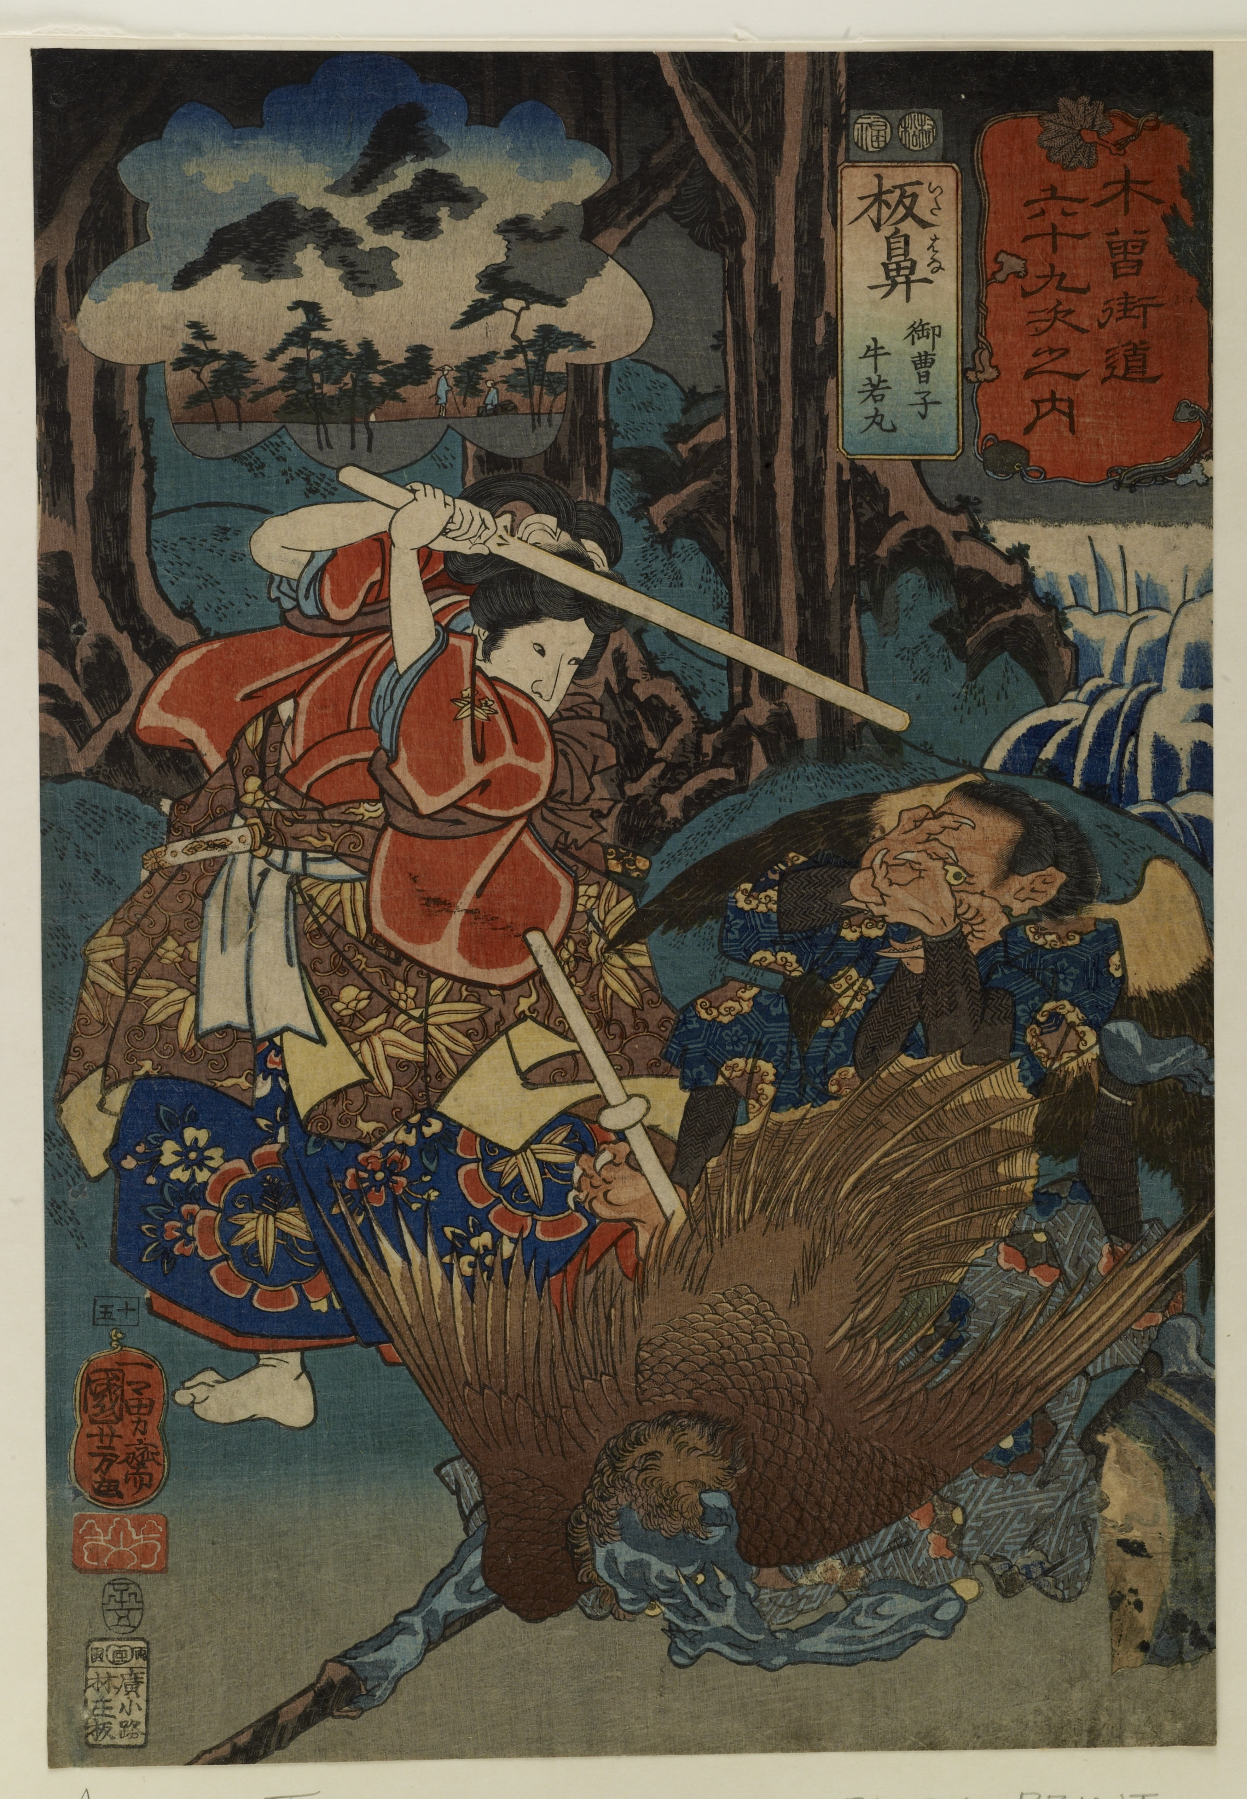 Japanese woodcuts Ushiwakamaru (Yoshitsune as a young boy) is fencing with tengu, a long nosed goblin, using wooden swords near Mount Kurimu near Kyoto.